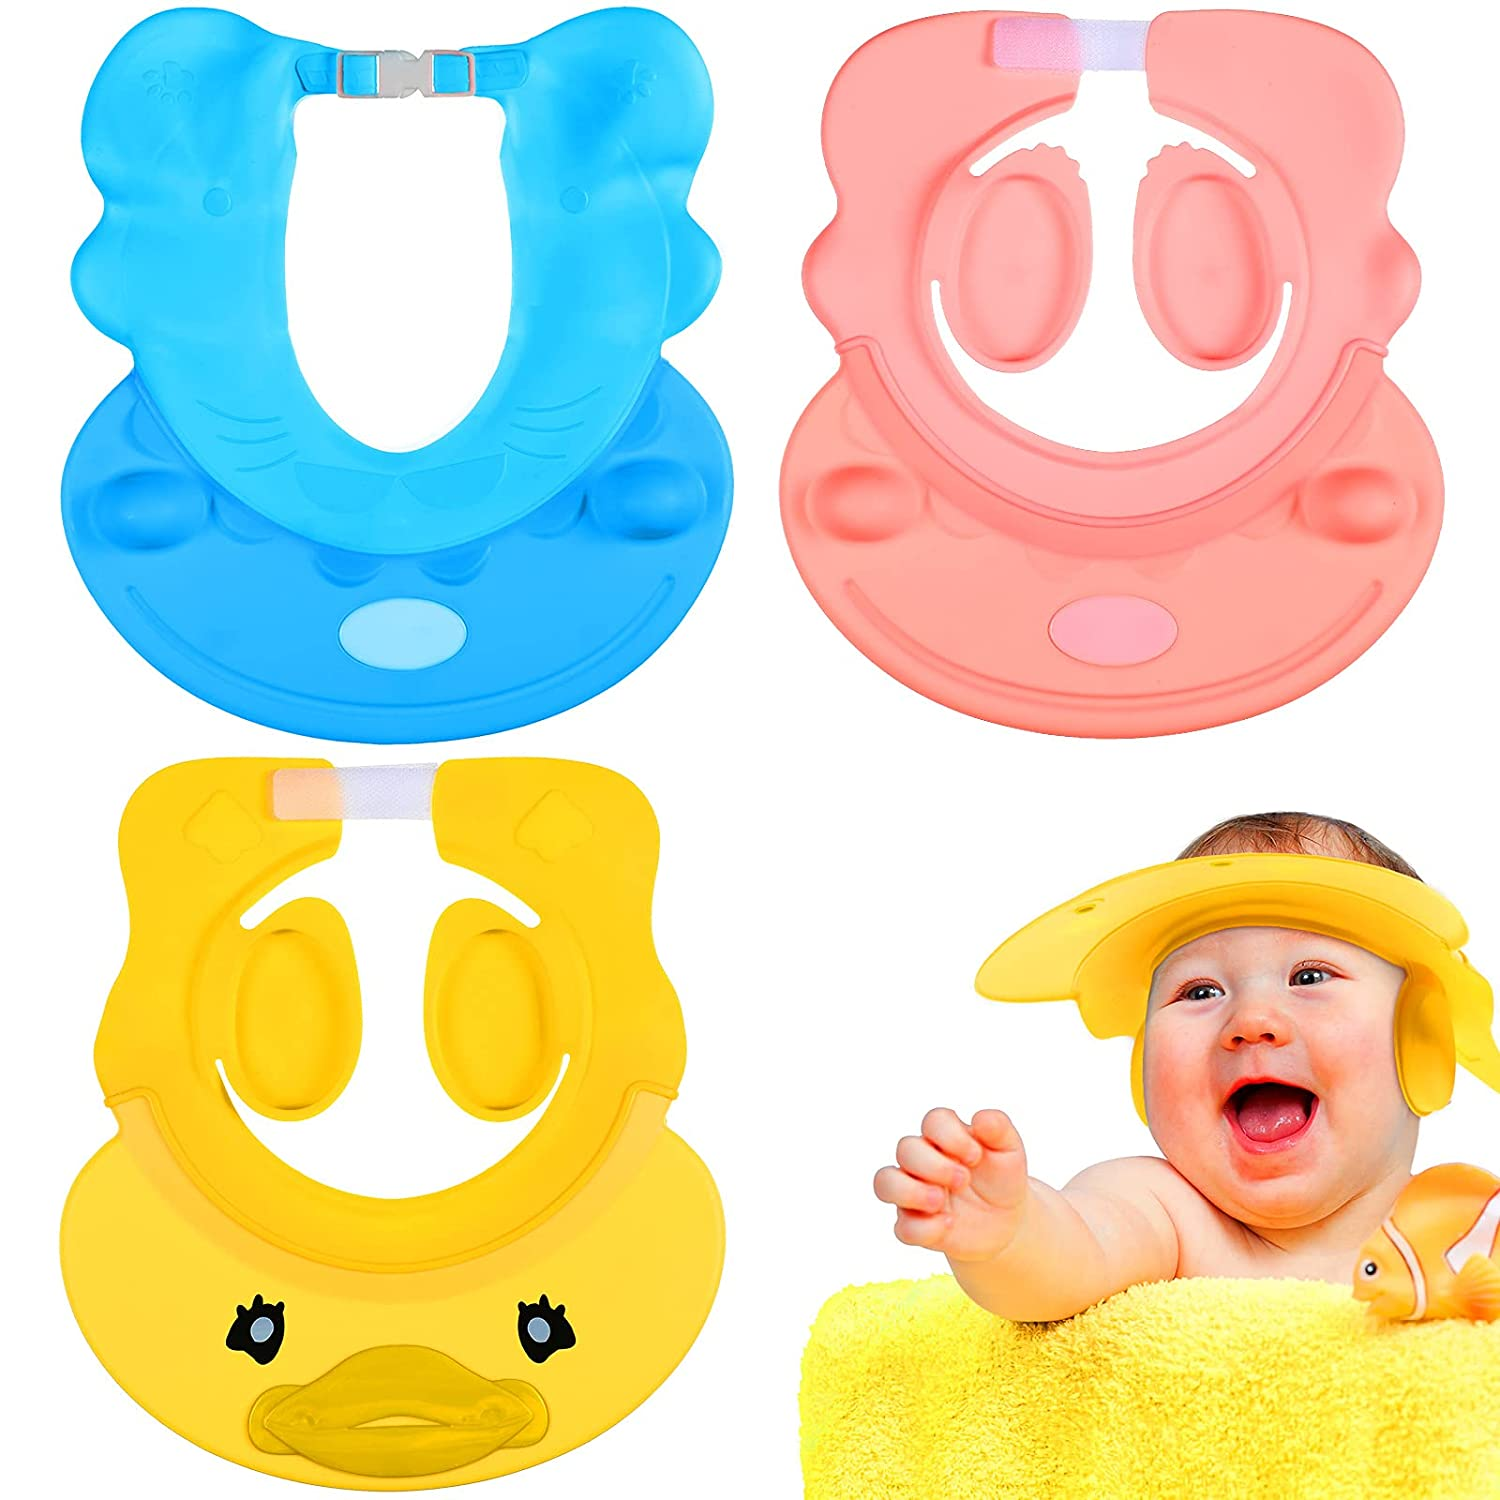 3 Pieces Baby Bathing Cap Silicone Baby Shampoo Cap Baby Shower Cap Waterproof Infant Bath Protection Hat for Babies Toddlers Infants